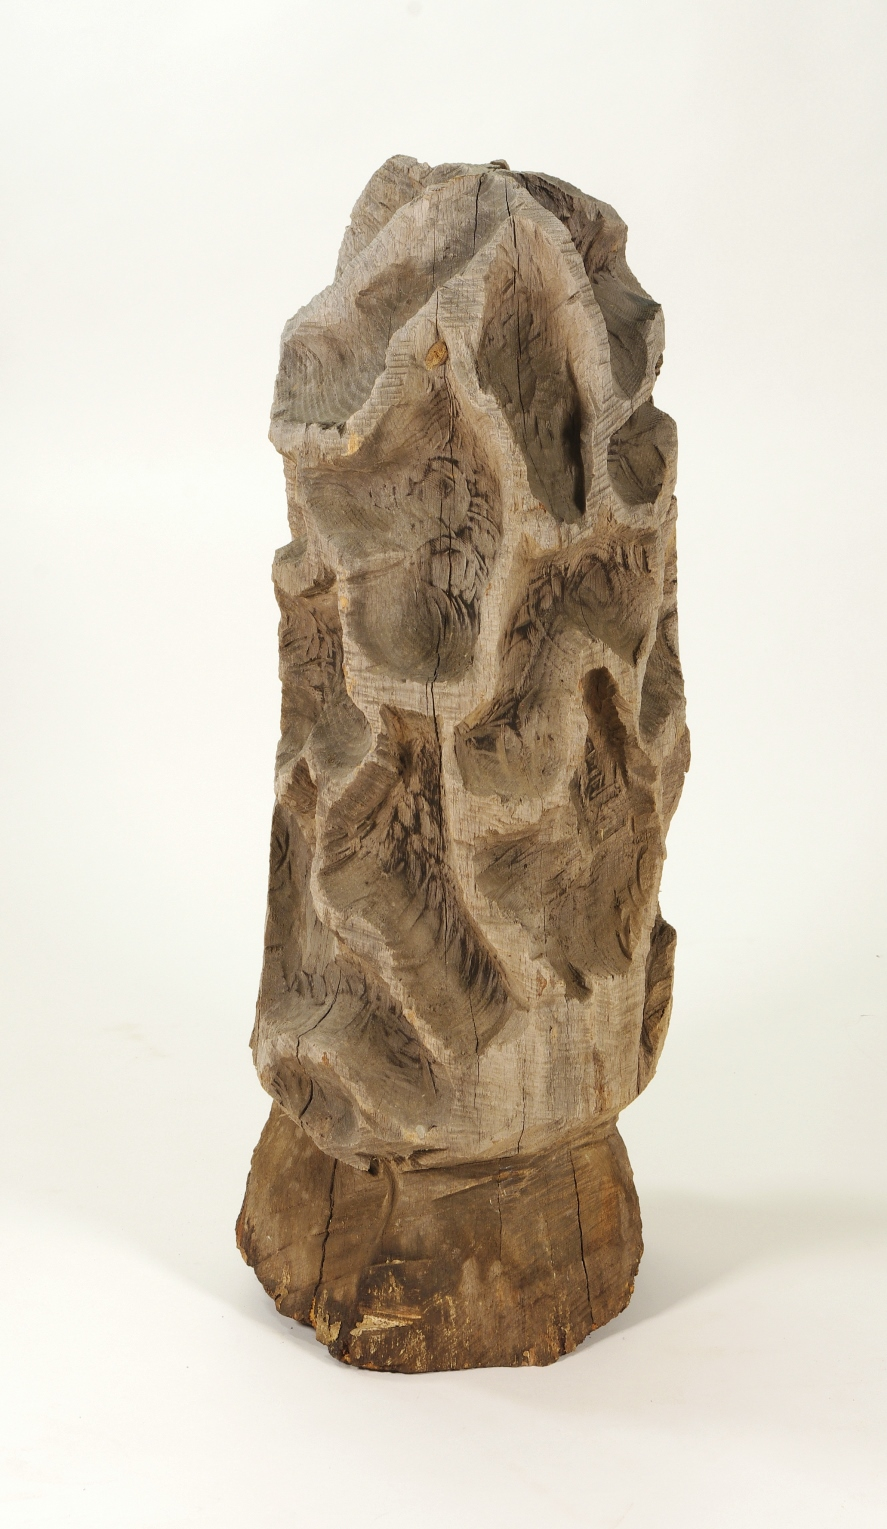 View 3: Folk Art Carved Morel Mushroom Sculpture, Mid 20th c.